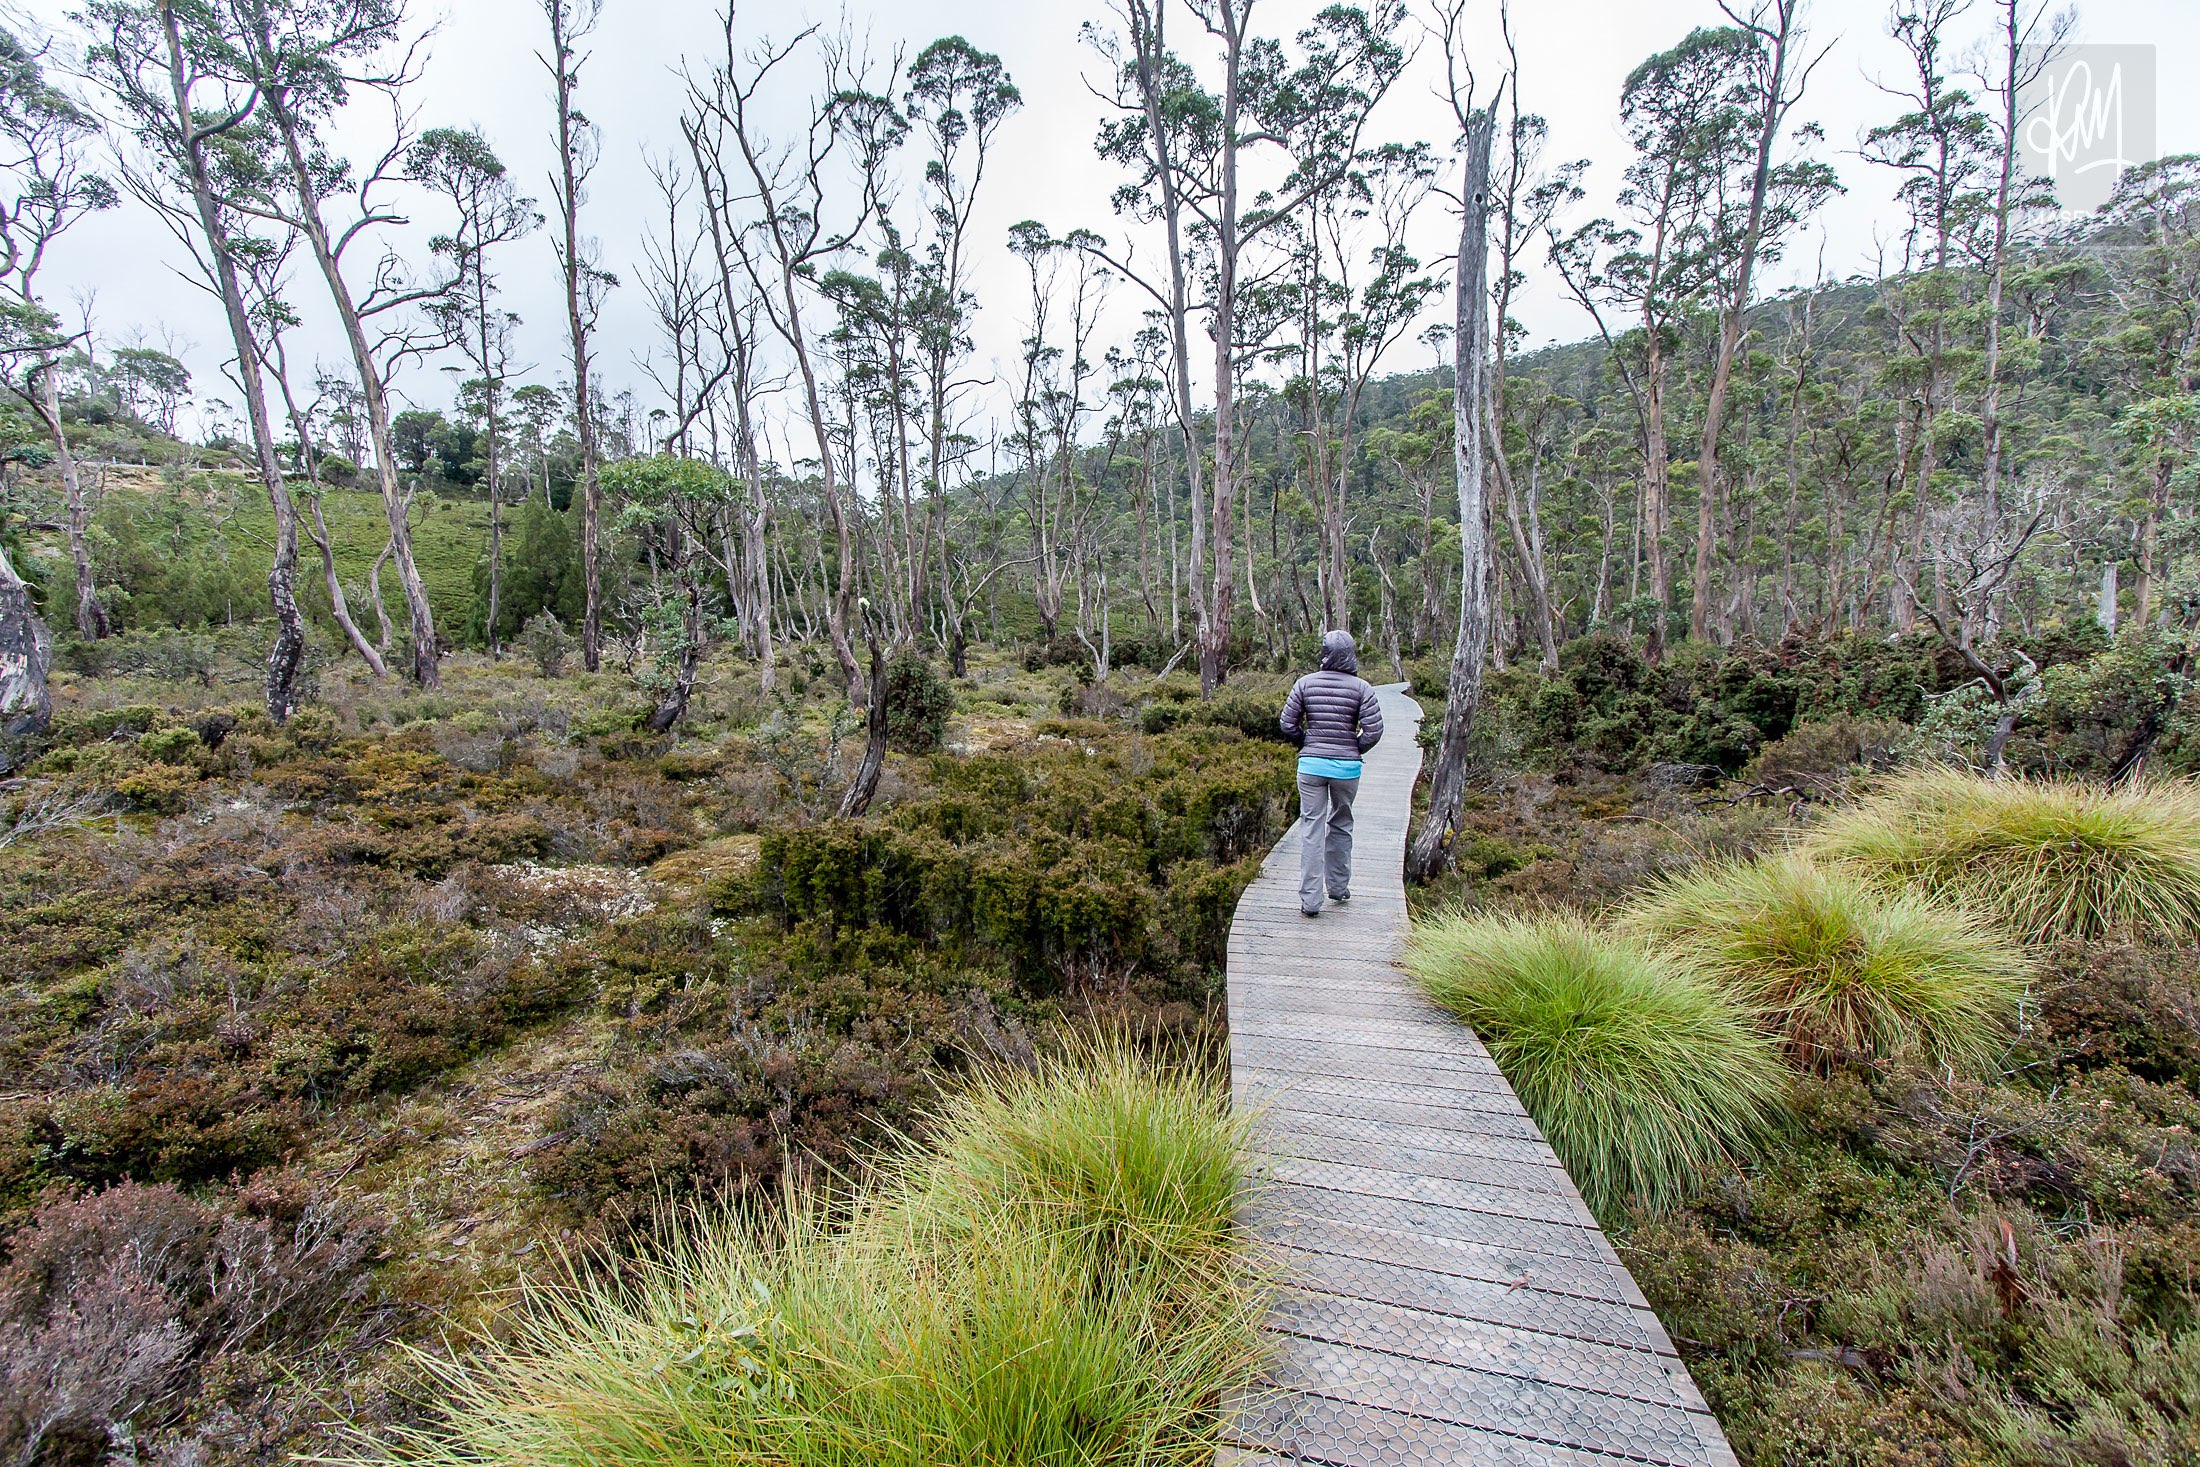 Plenty of eco-responsible trails throughout the National Park